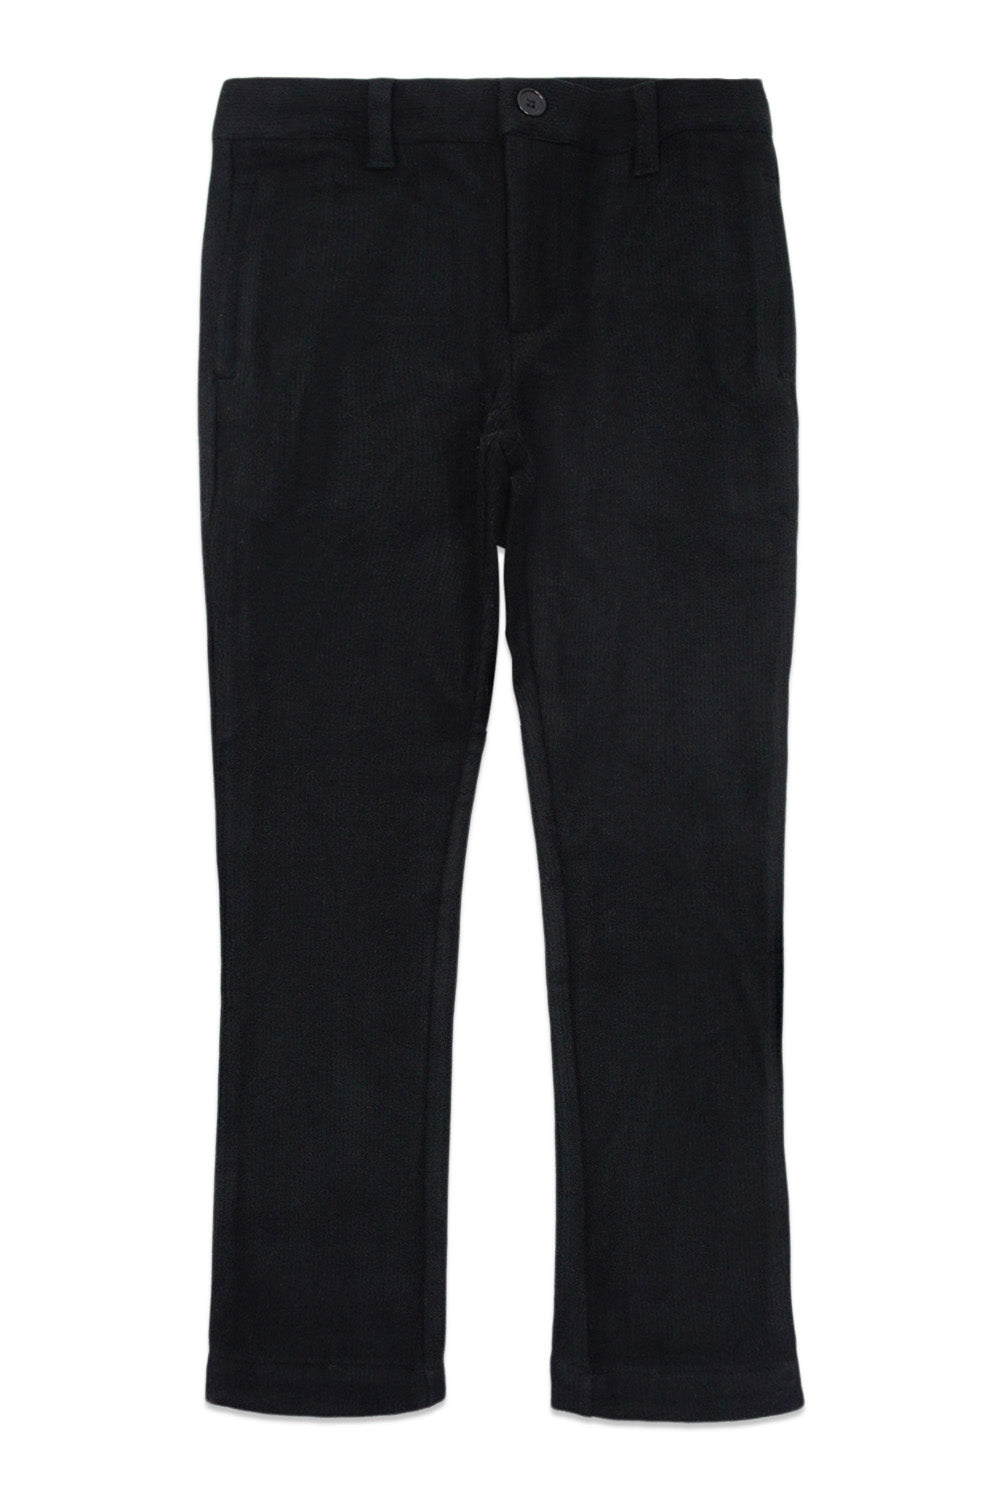 Noma Black Cord Effect Pants